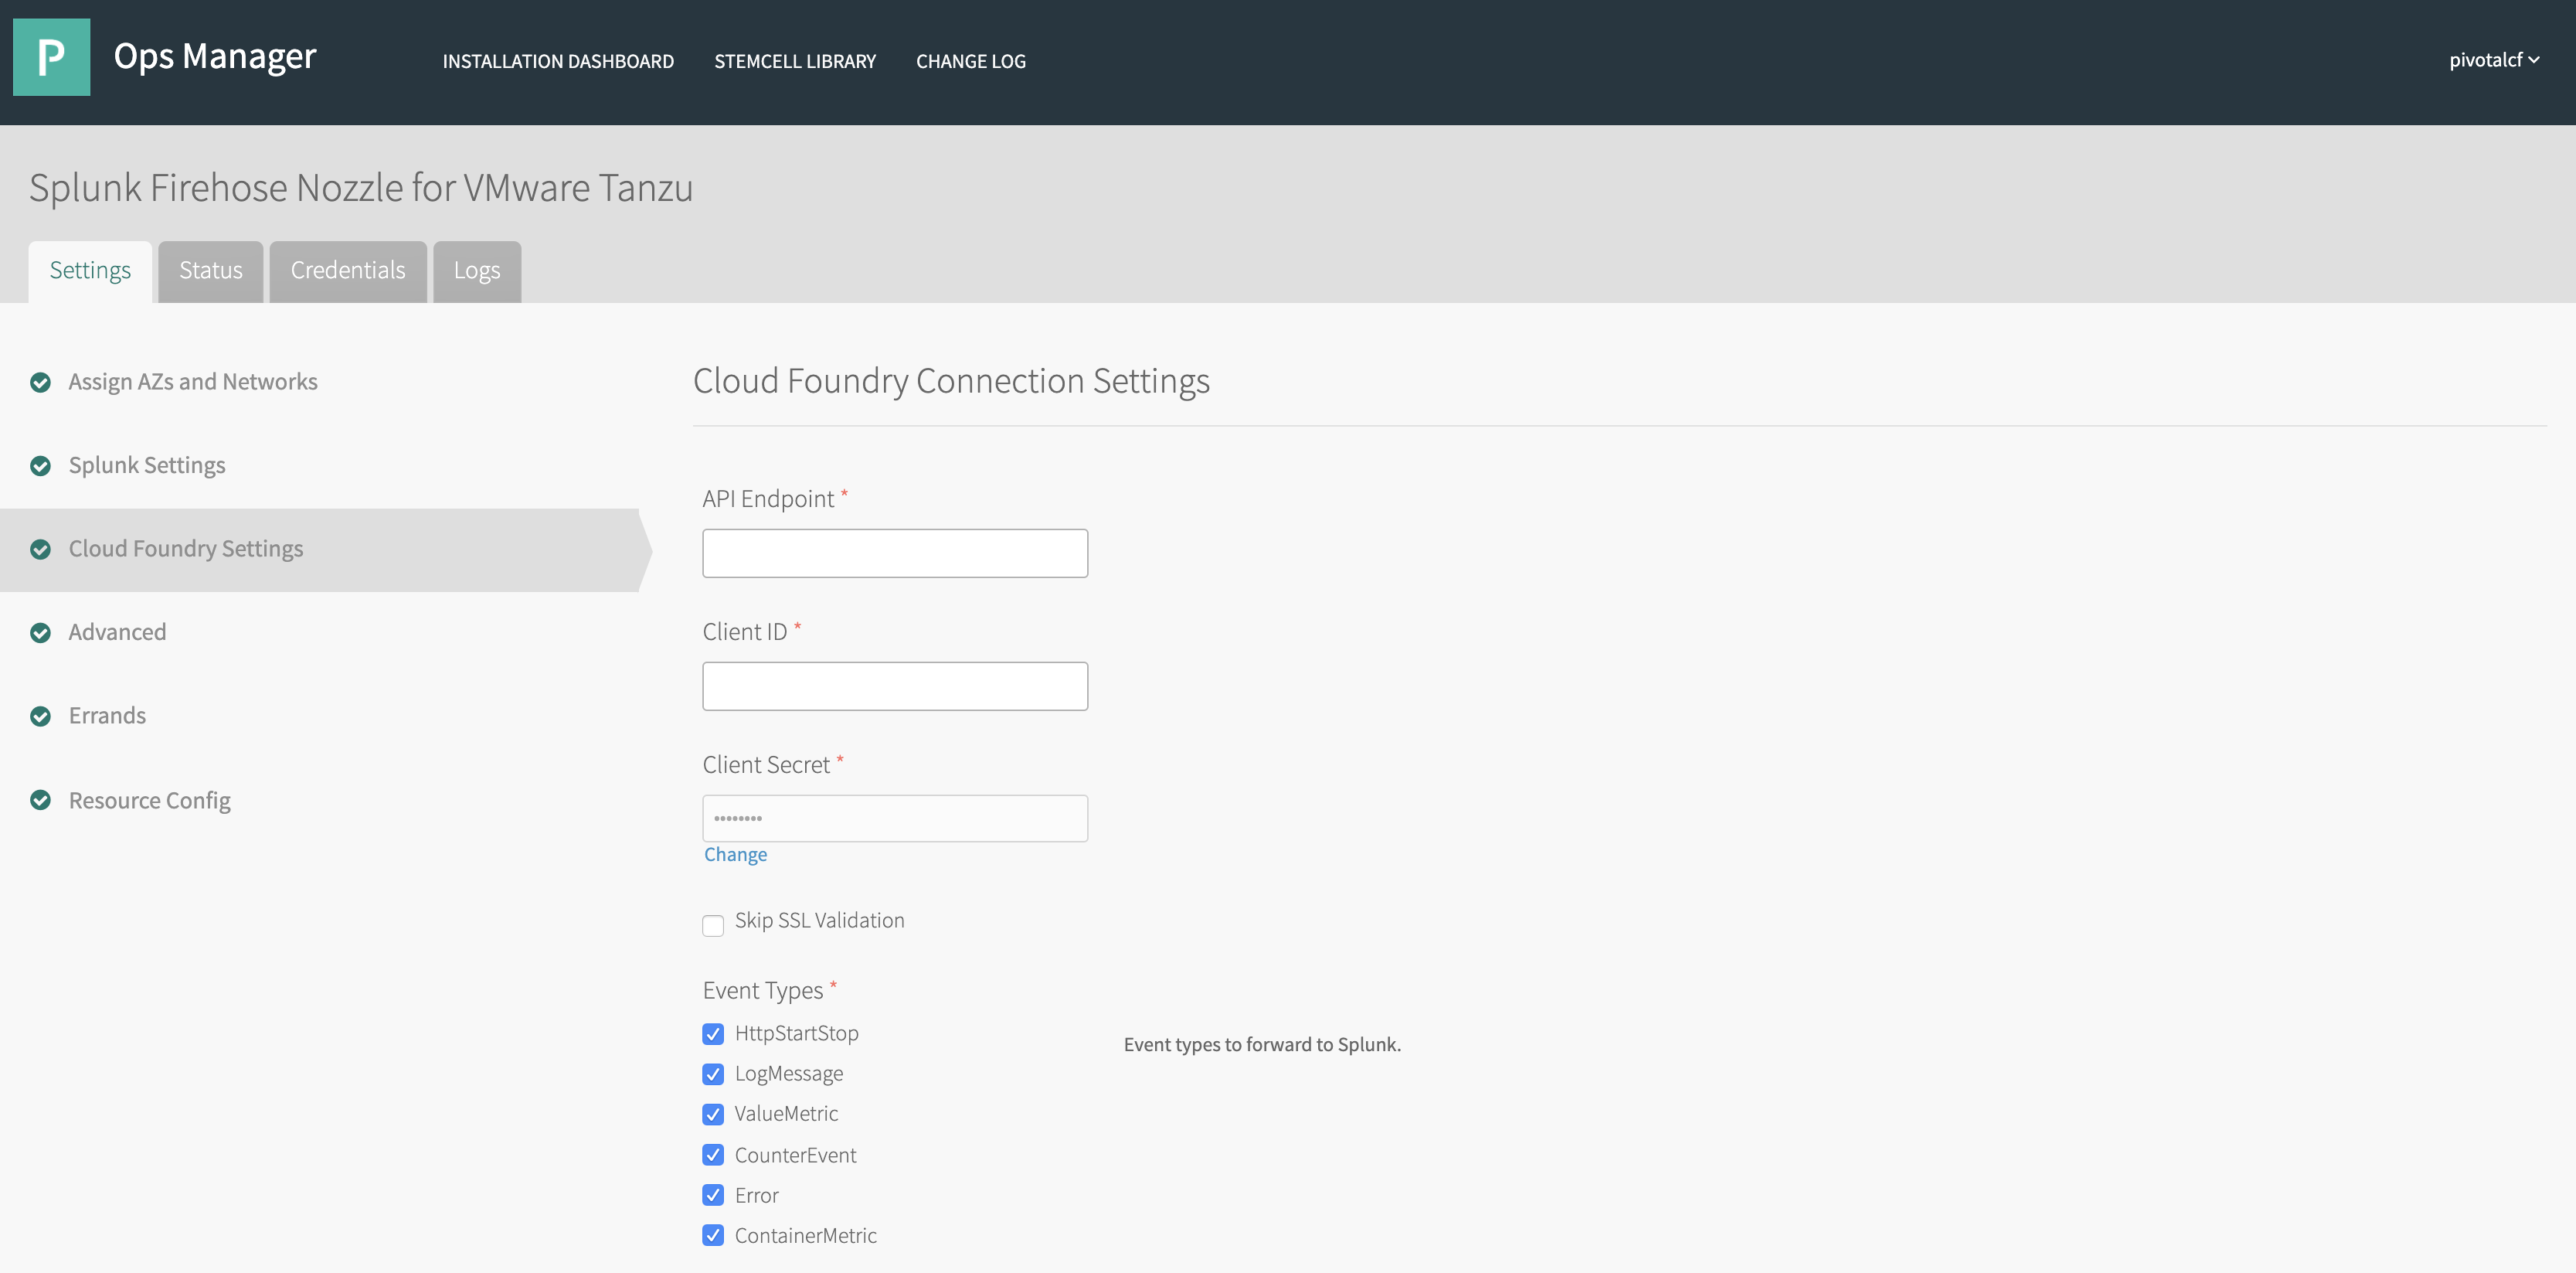 Installing and Configuring Splunk Firehose Nozzle for PCF | Pivotal